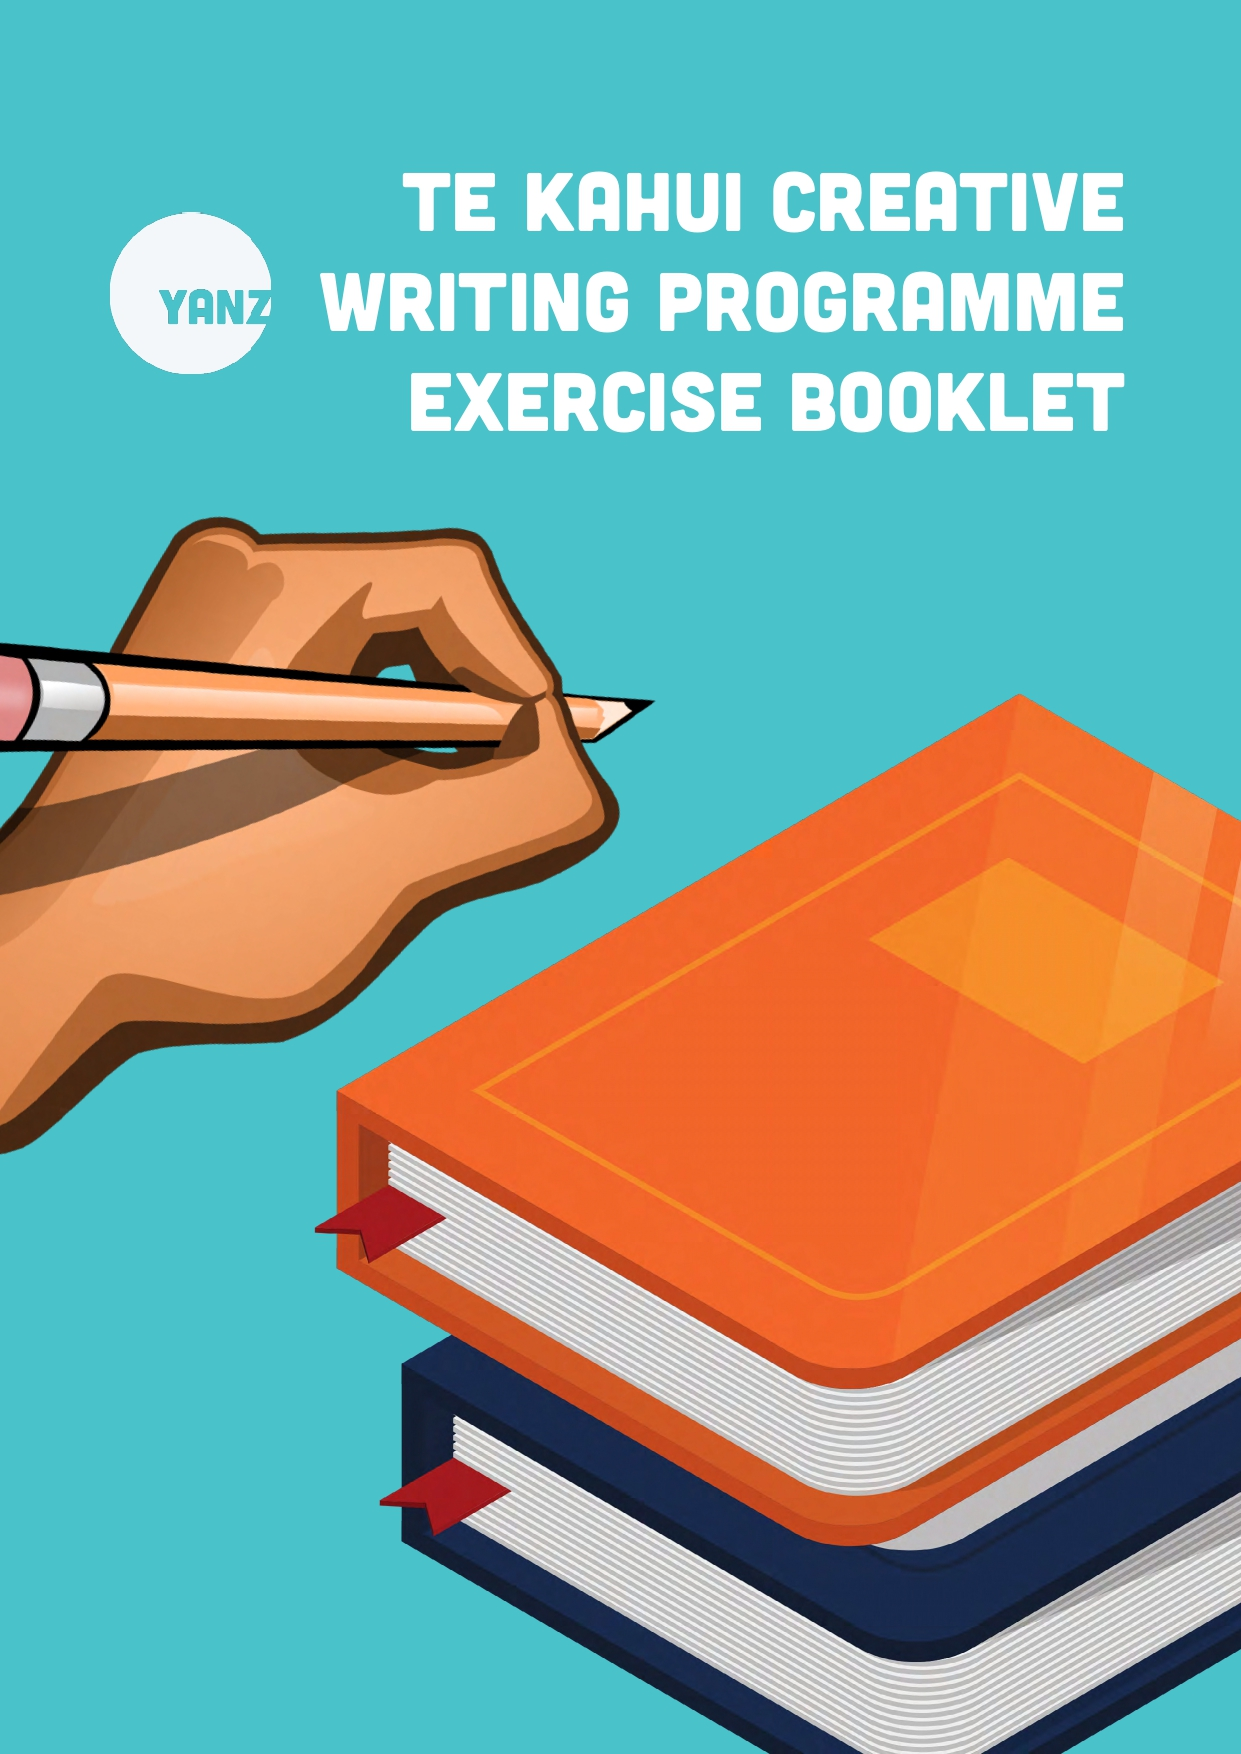 The cover of a Te Kahui creative writing exercise booklet